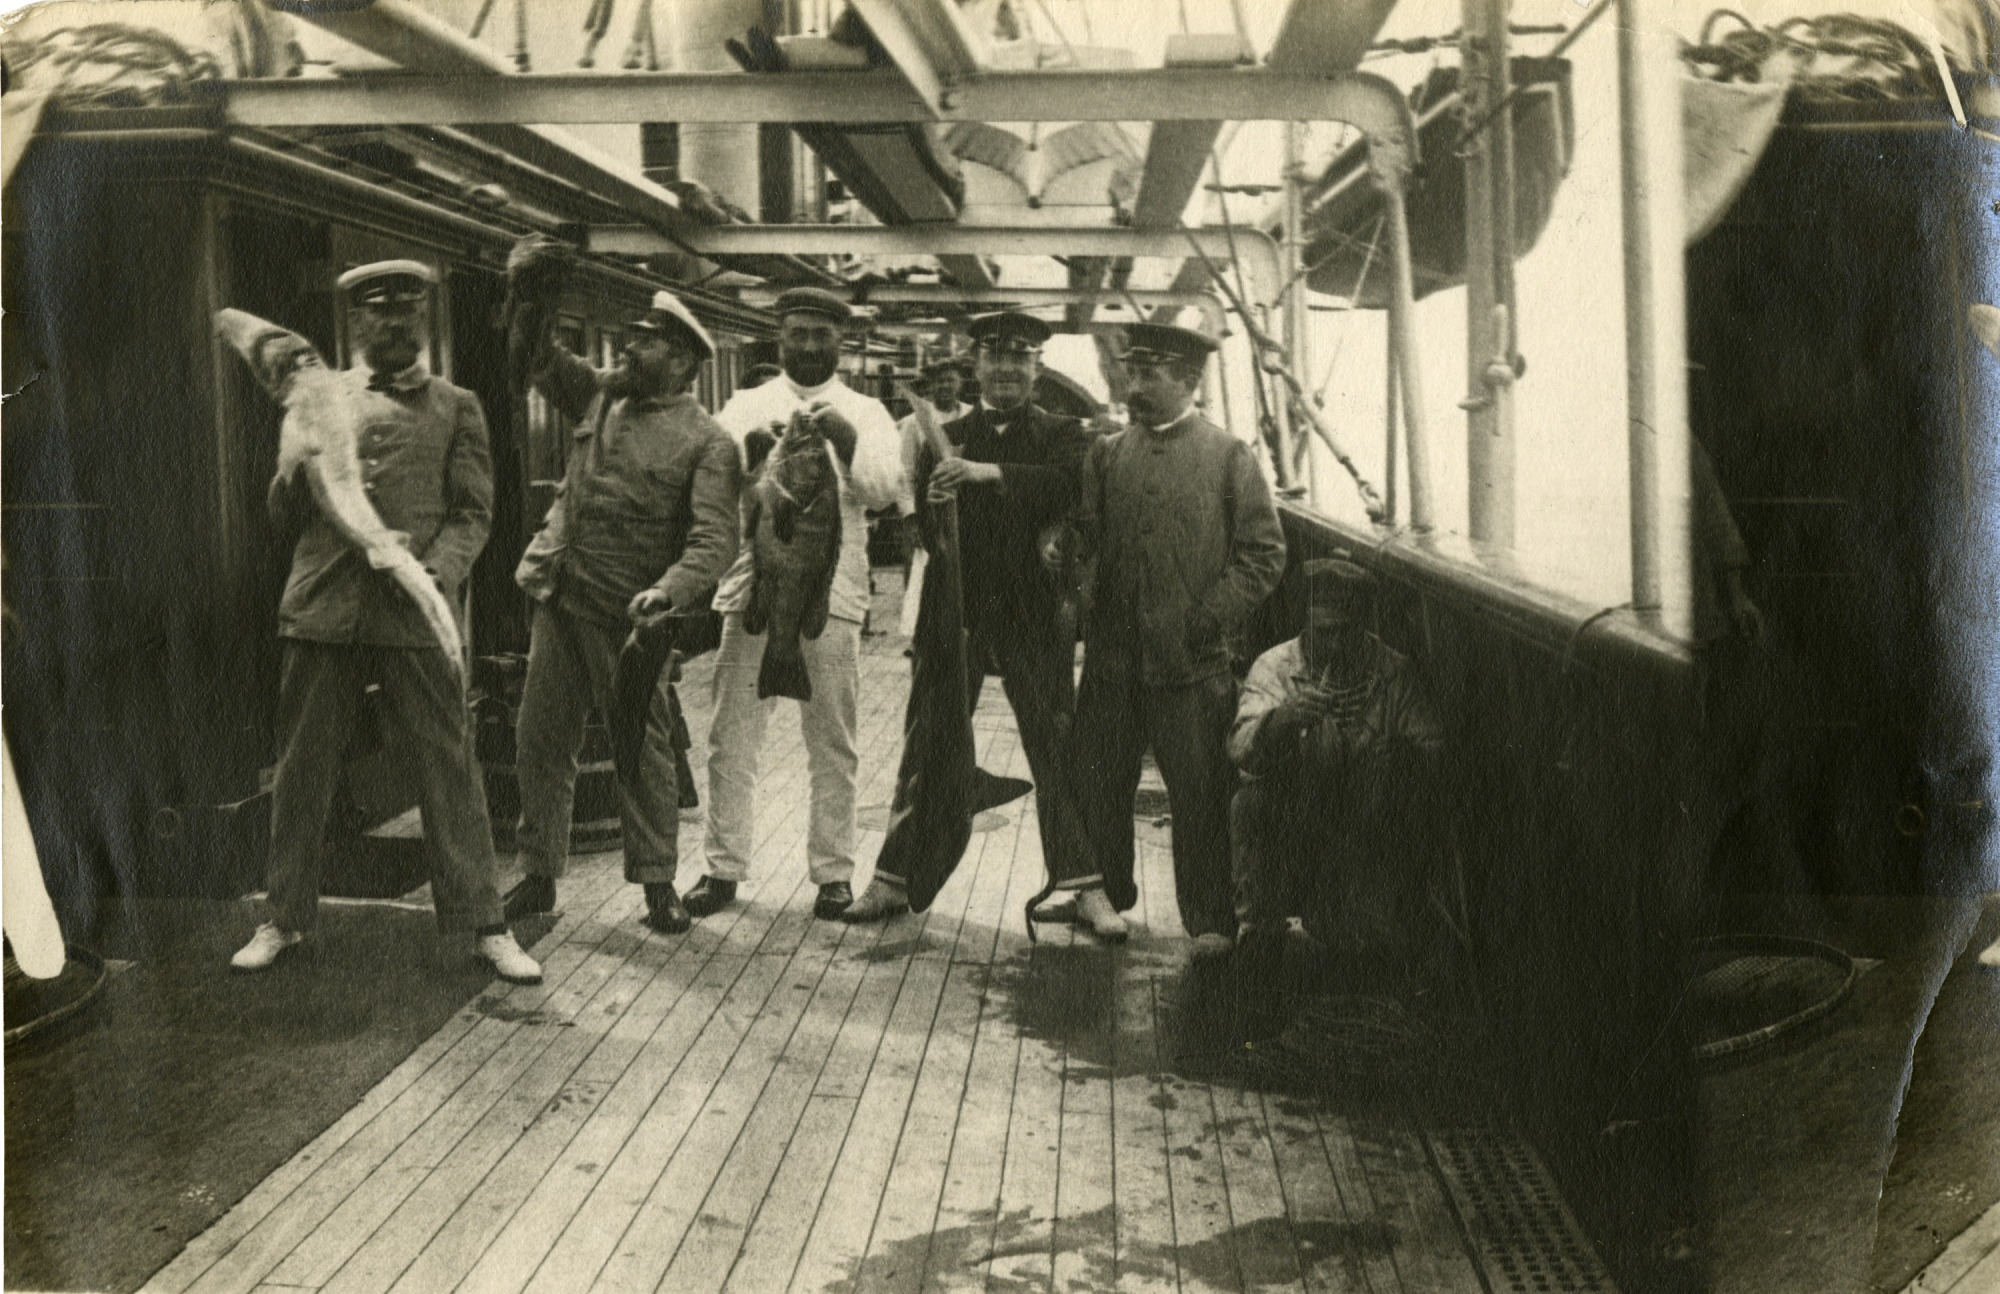 Left to right: Prince Albert I of Monaco, L. Tinayre, Dr. Richard, M. Fuhrmeister, and Dr. Louet